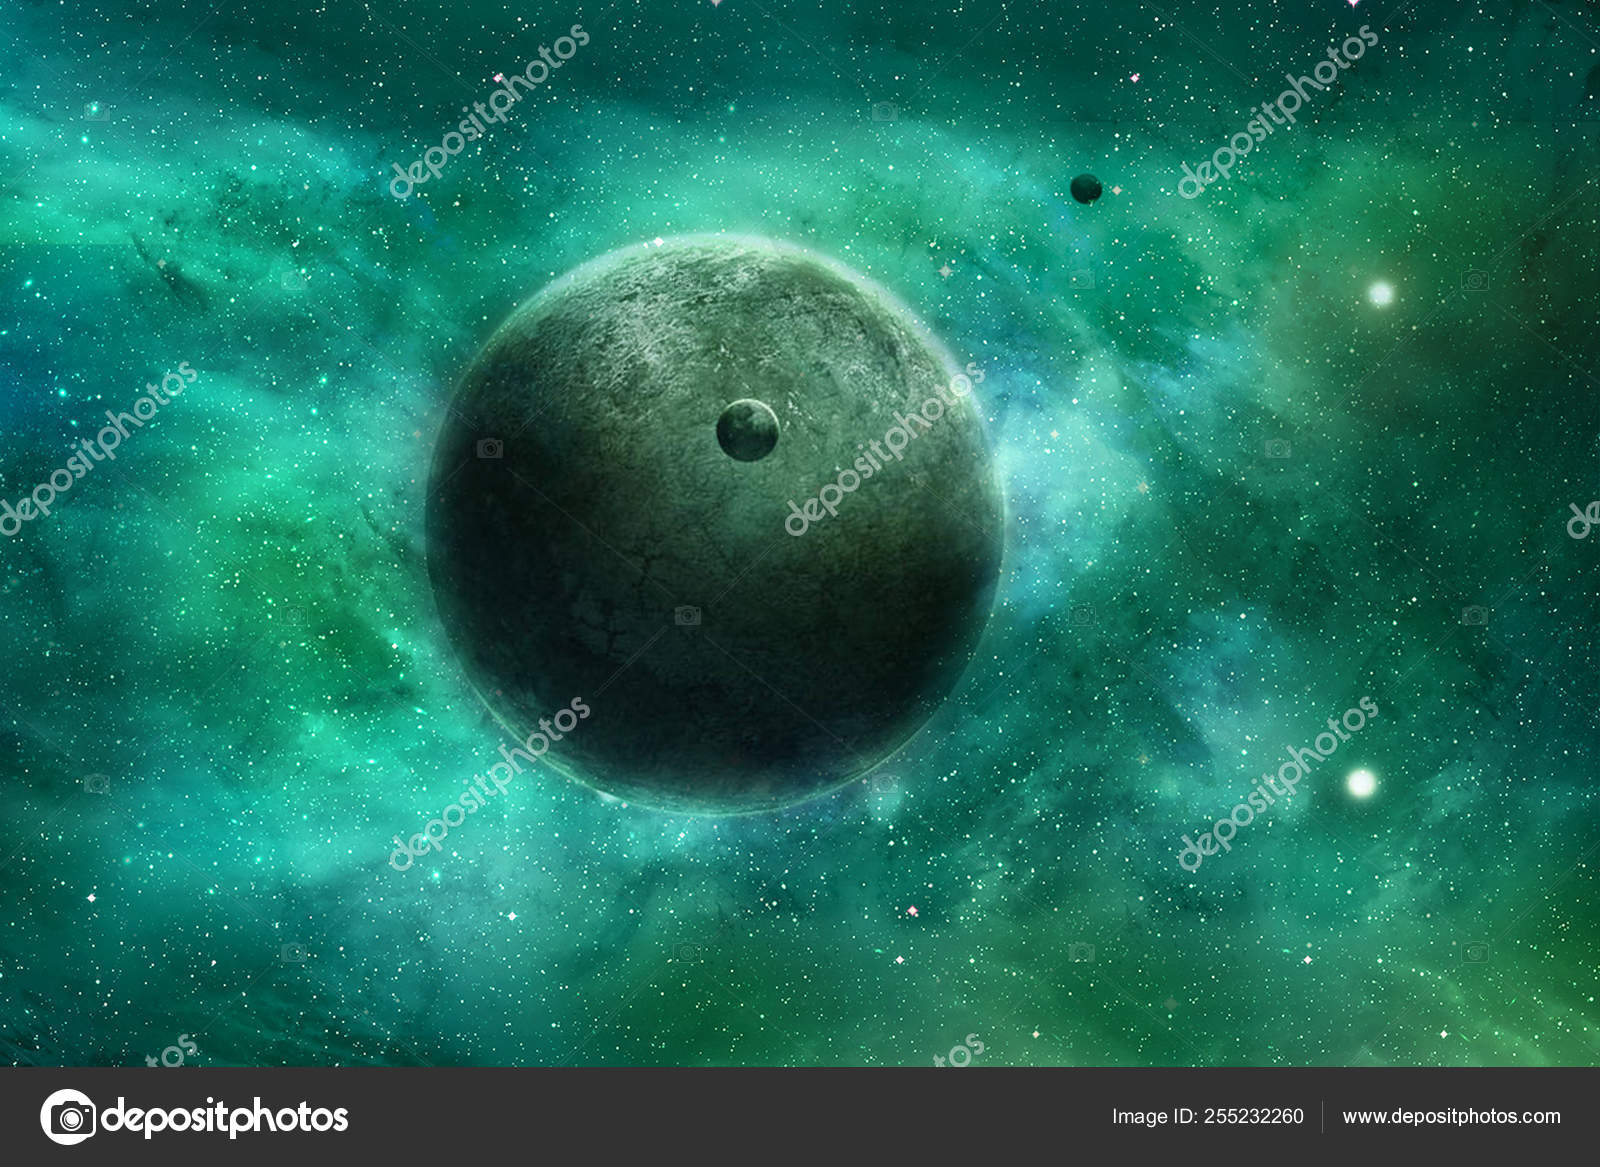 Abstract Smooth Beautiful Planet In A Colorful Galaxy Artwork Stock Photo C Mo Ali 255232260